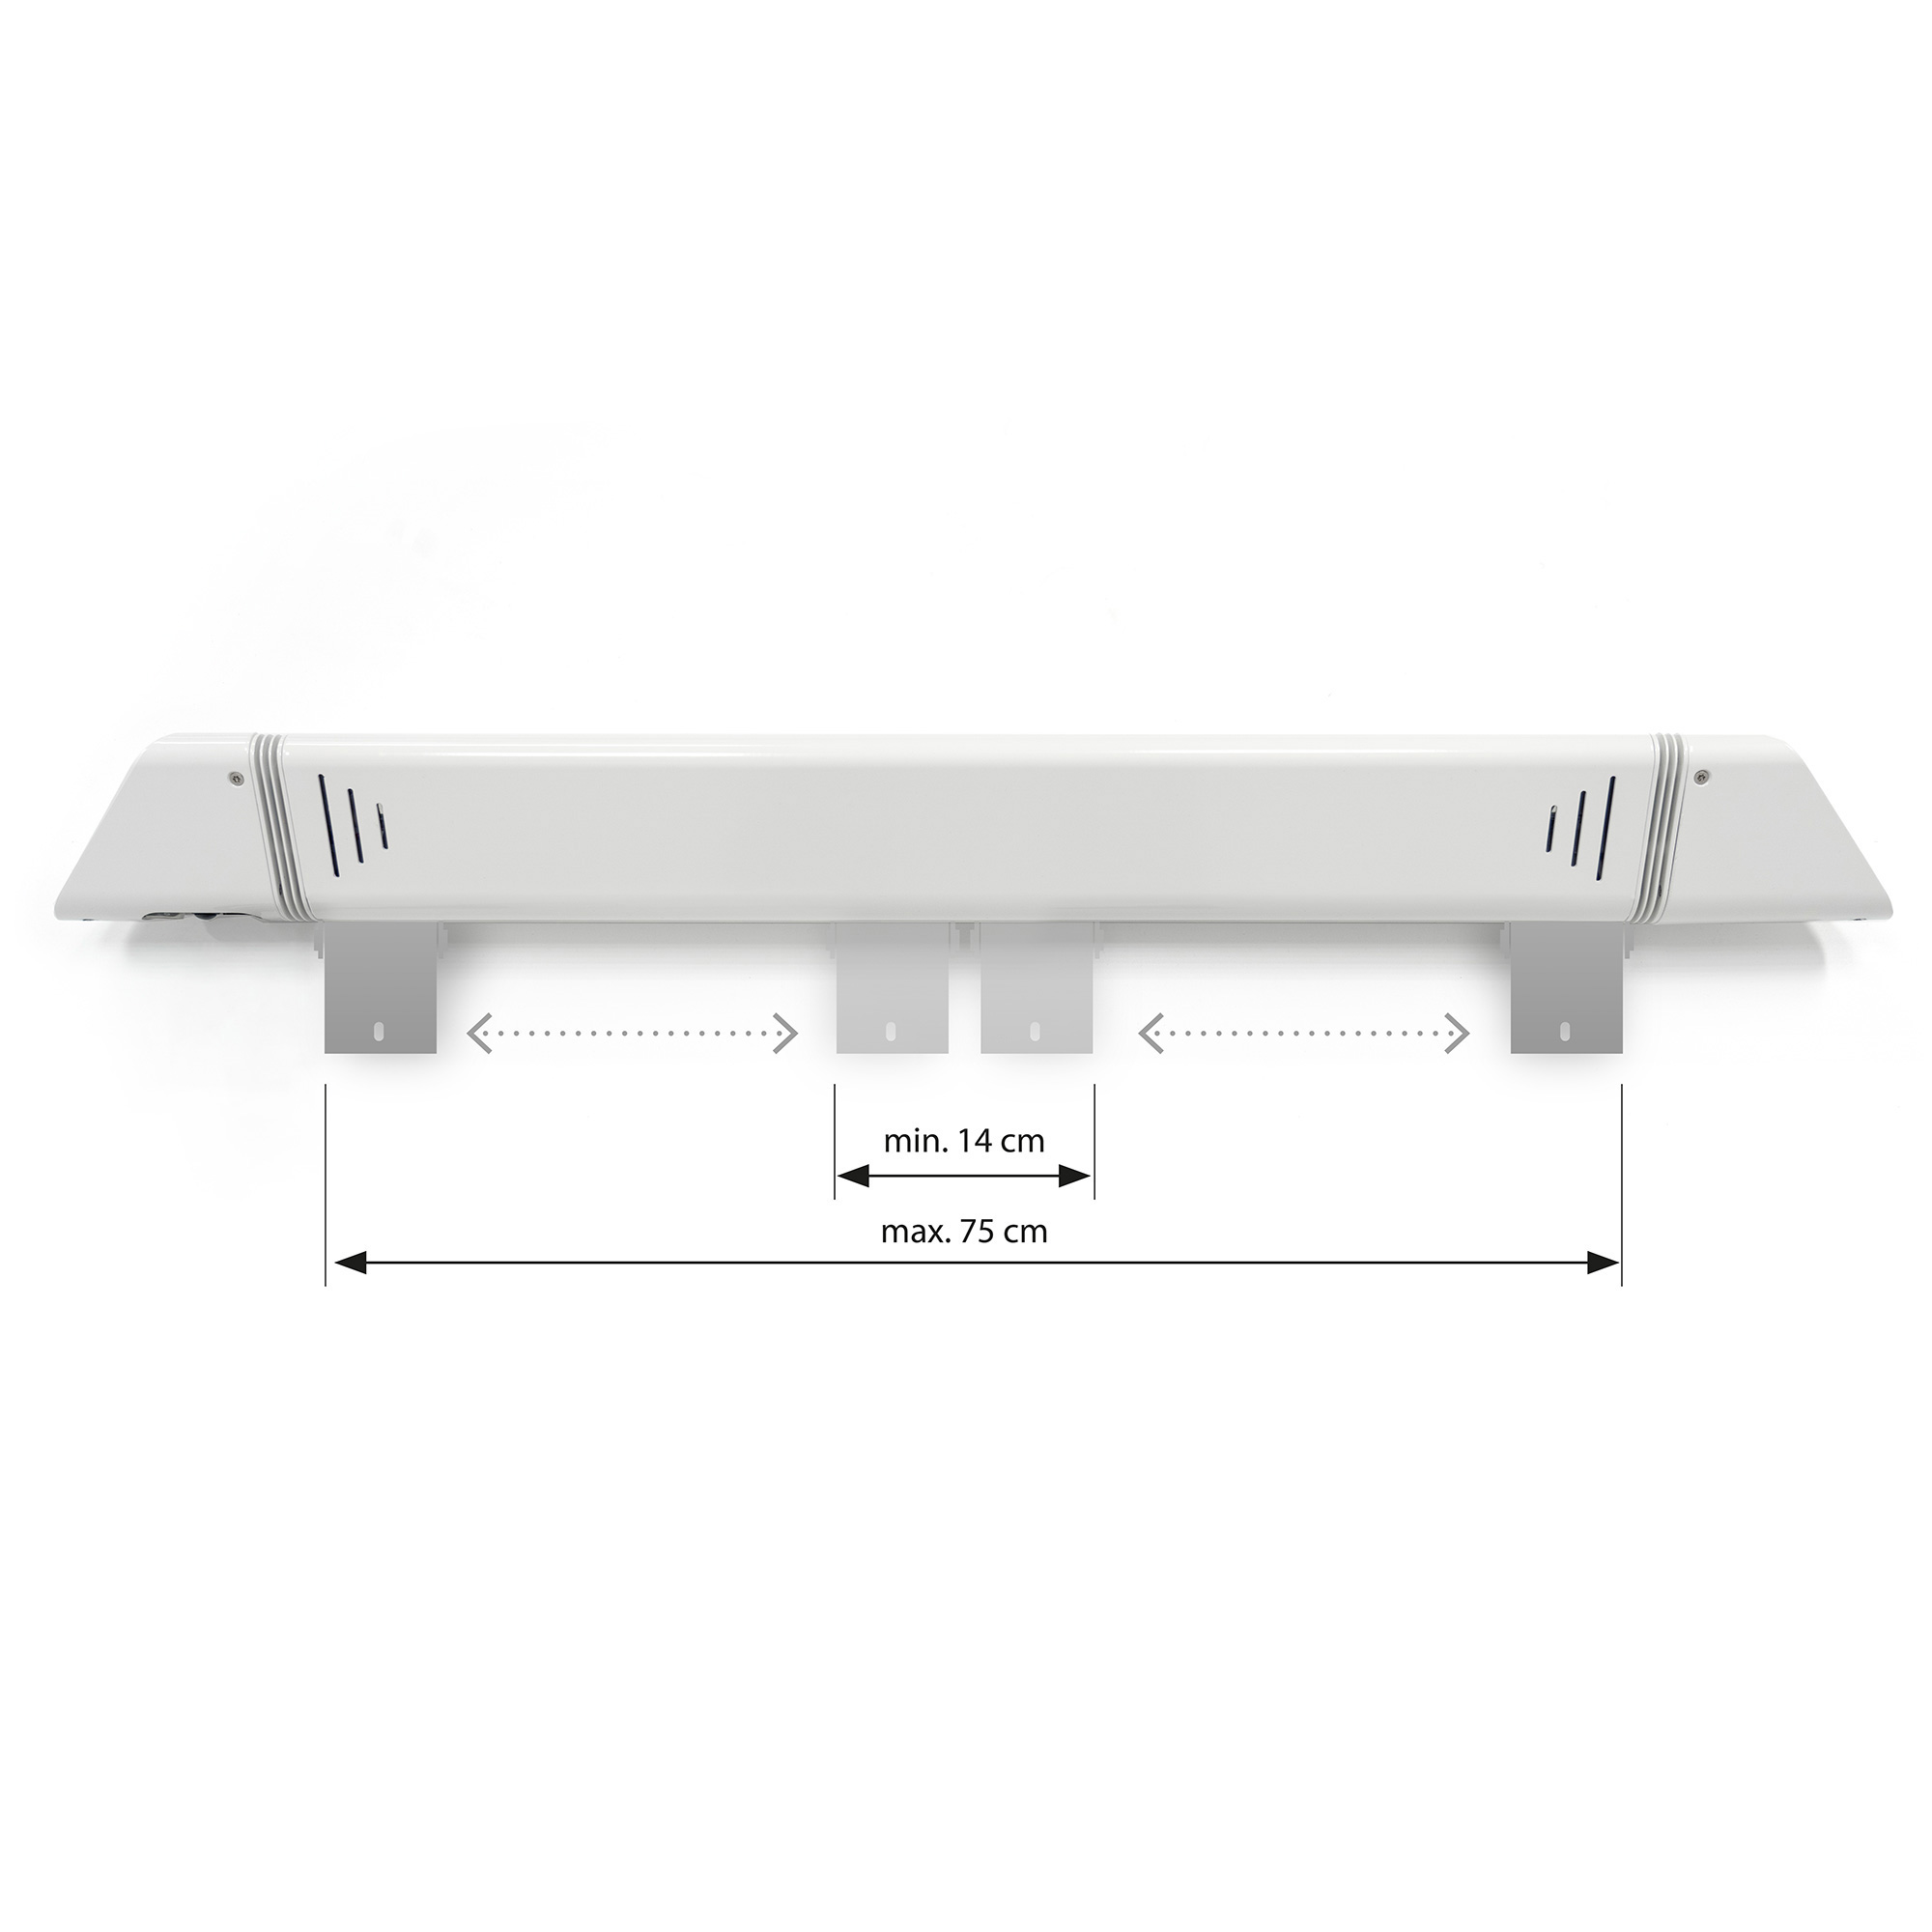 Electric patio heater wall ceiling mount adjustable